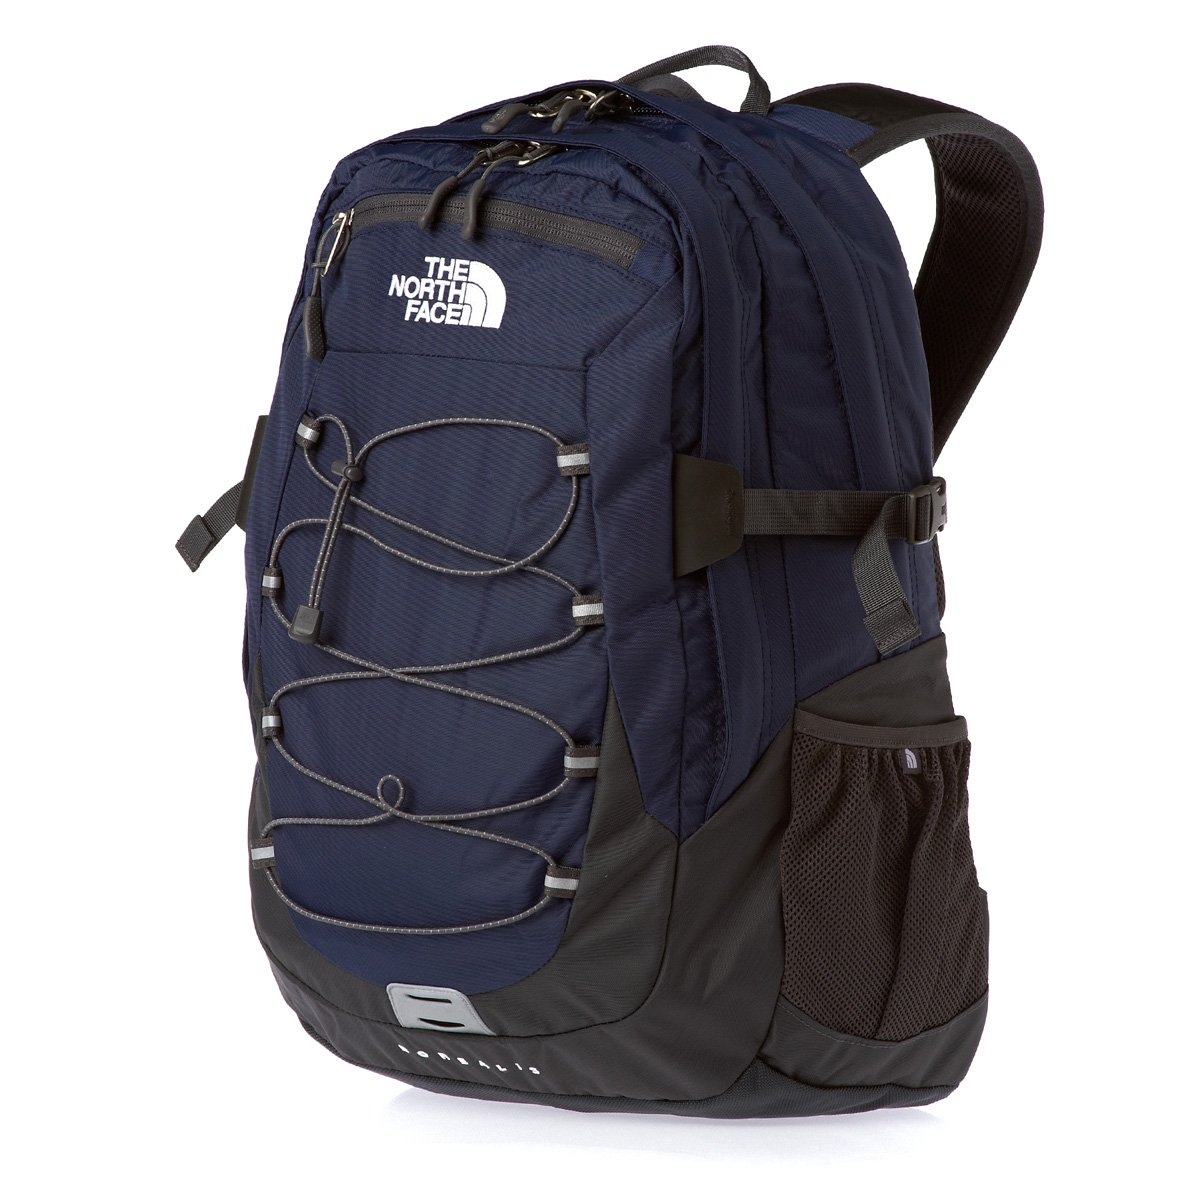 Northface college student backpack